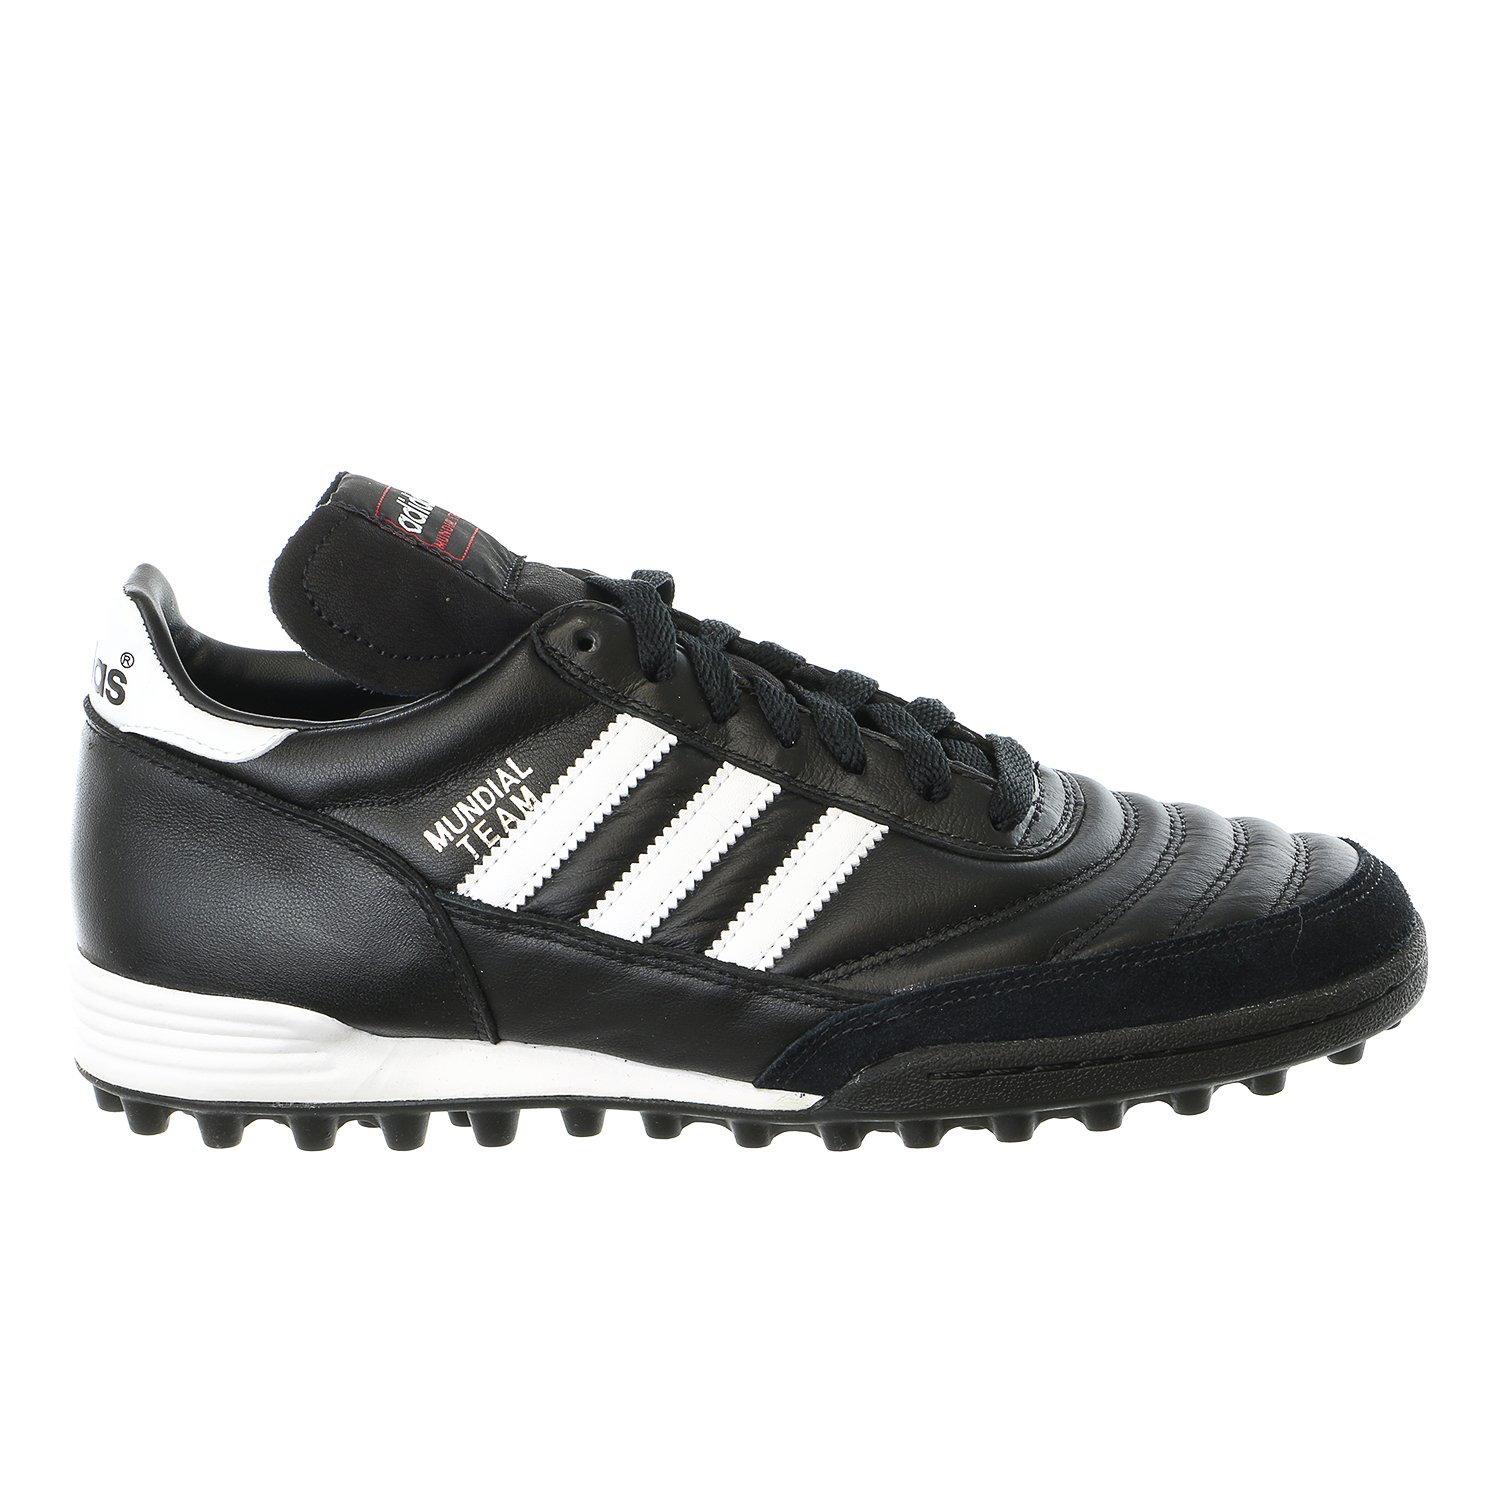 9f56eeb91c4a Adidas Indoor Soccer Shoes Size 9 Top Deals   Lowest Price ...